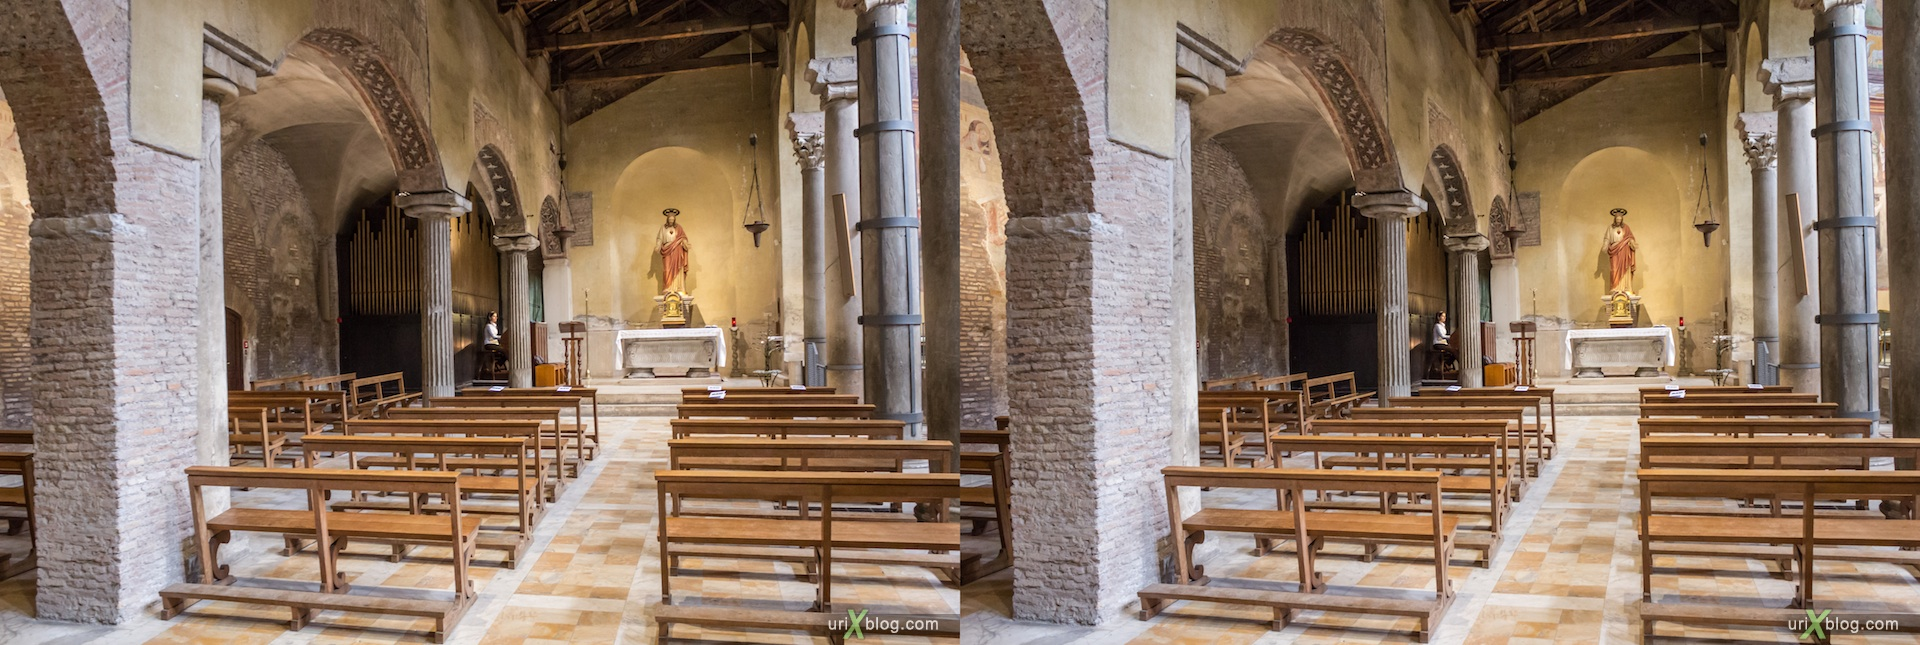 2012, basilica di San Saba, church, Rome, Italy, cathedral, monastery, Christianity, Catholicism, 3D, stereo pair, cross-eyed, crossview, cross view stereo pair